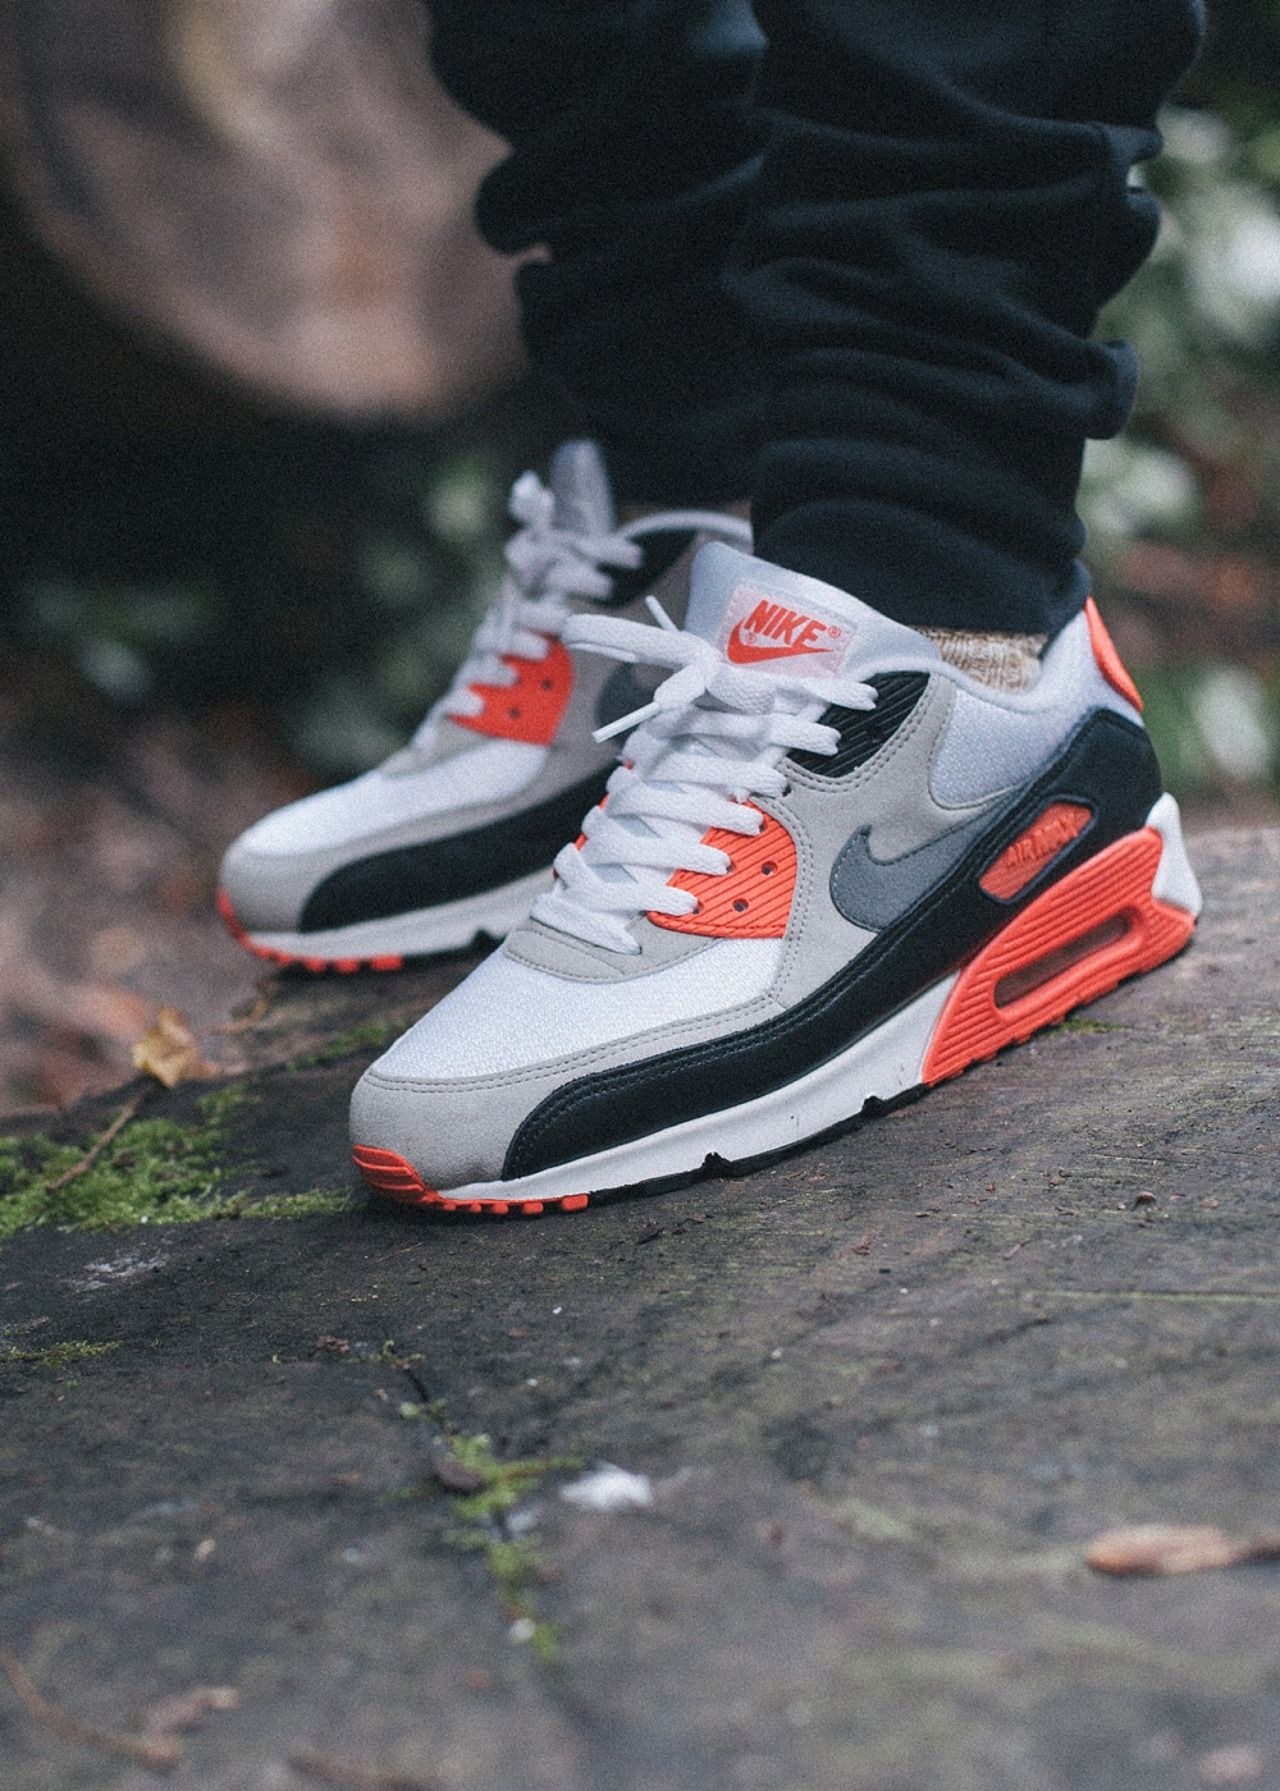 Nike Air Max 90 'Infrared'. | Sneakers fashion, Sneakers